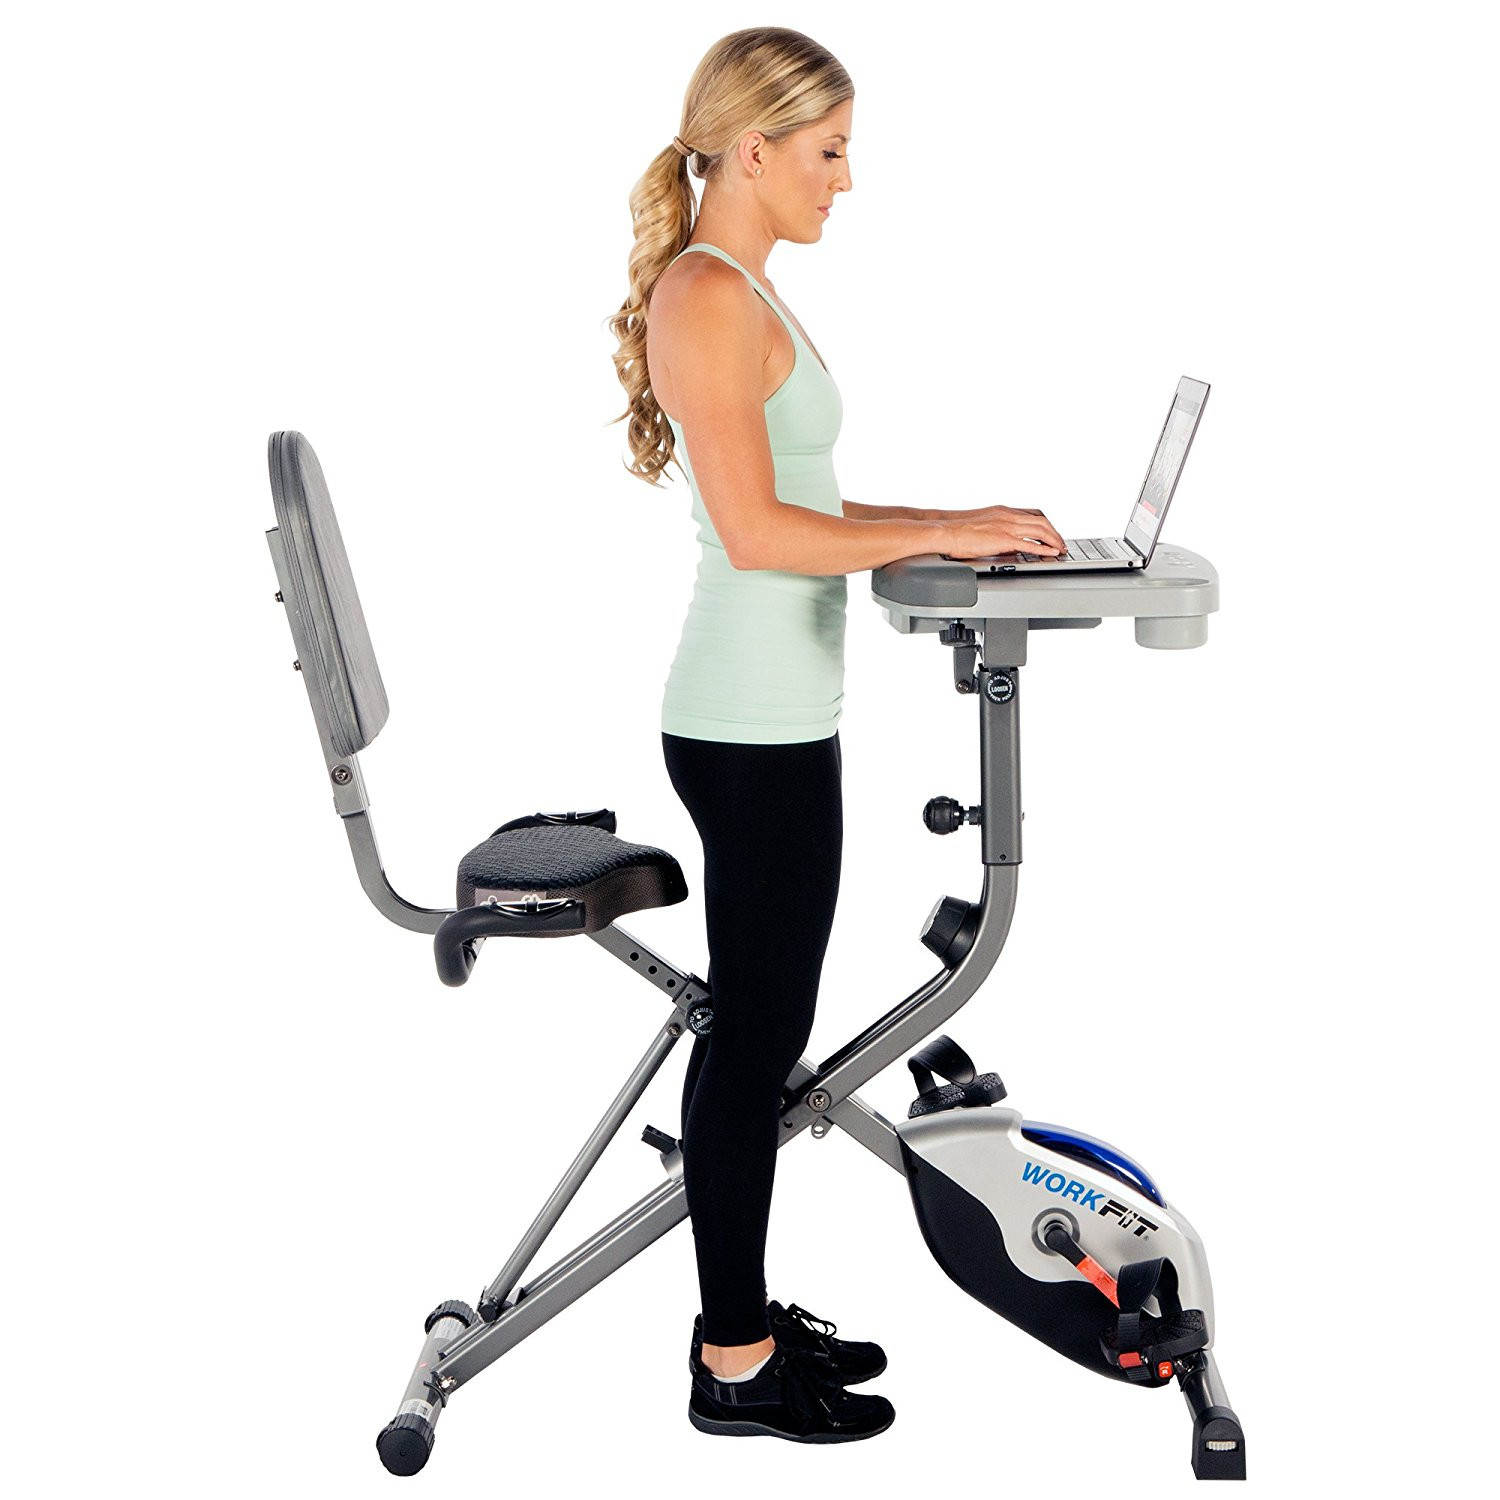 Exerpeutic WorkFit 1000 exercise bike review